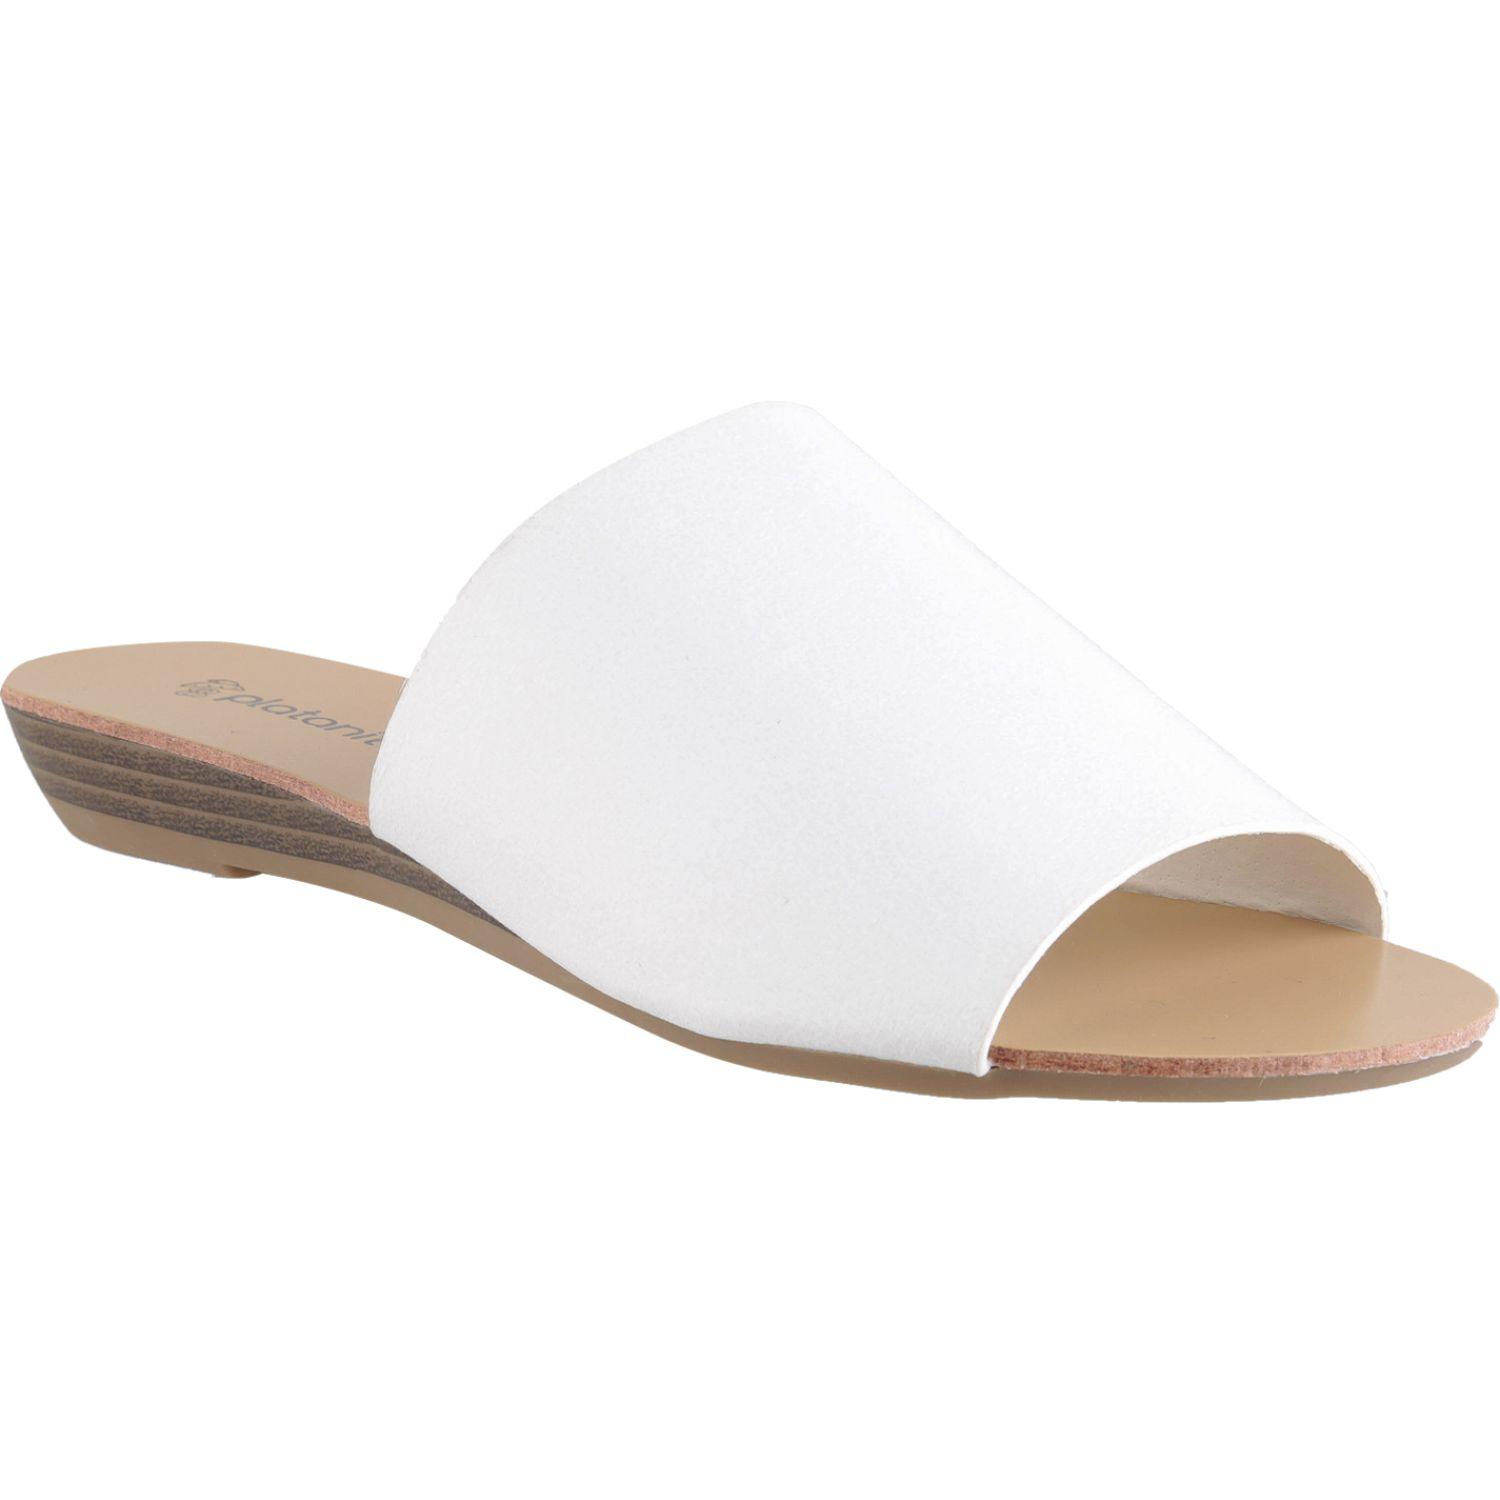 Platanitos sf 7101 Blanco Flats